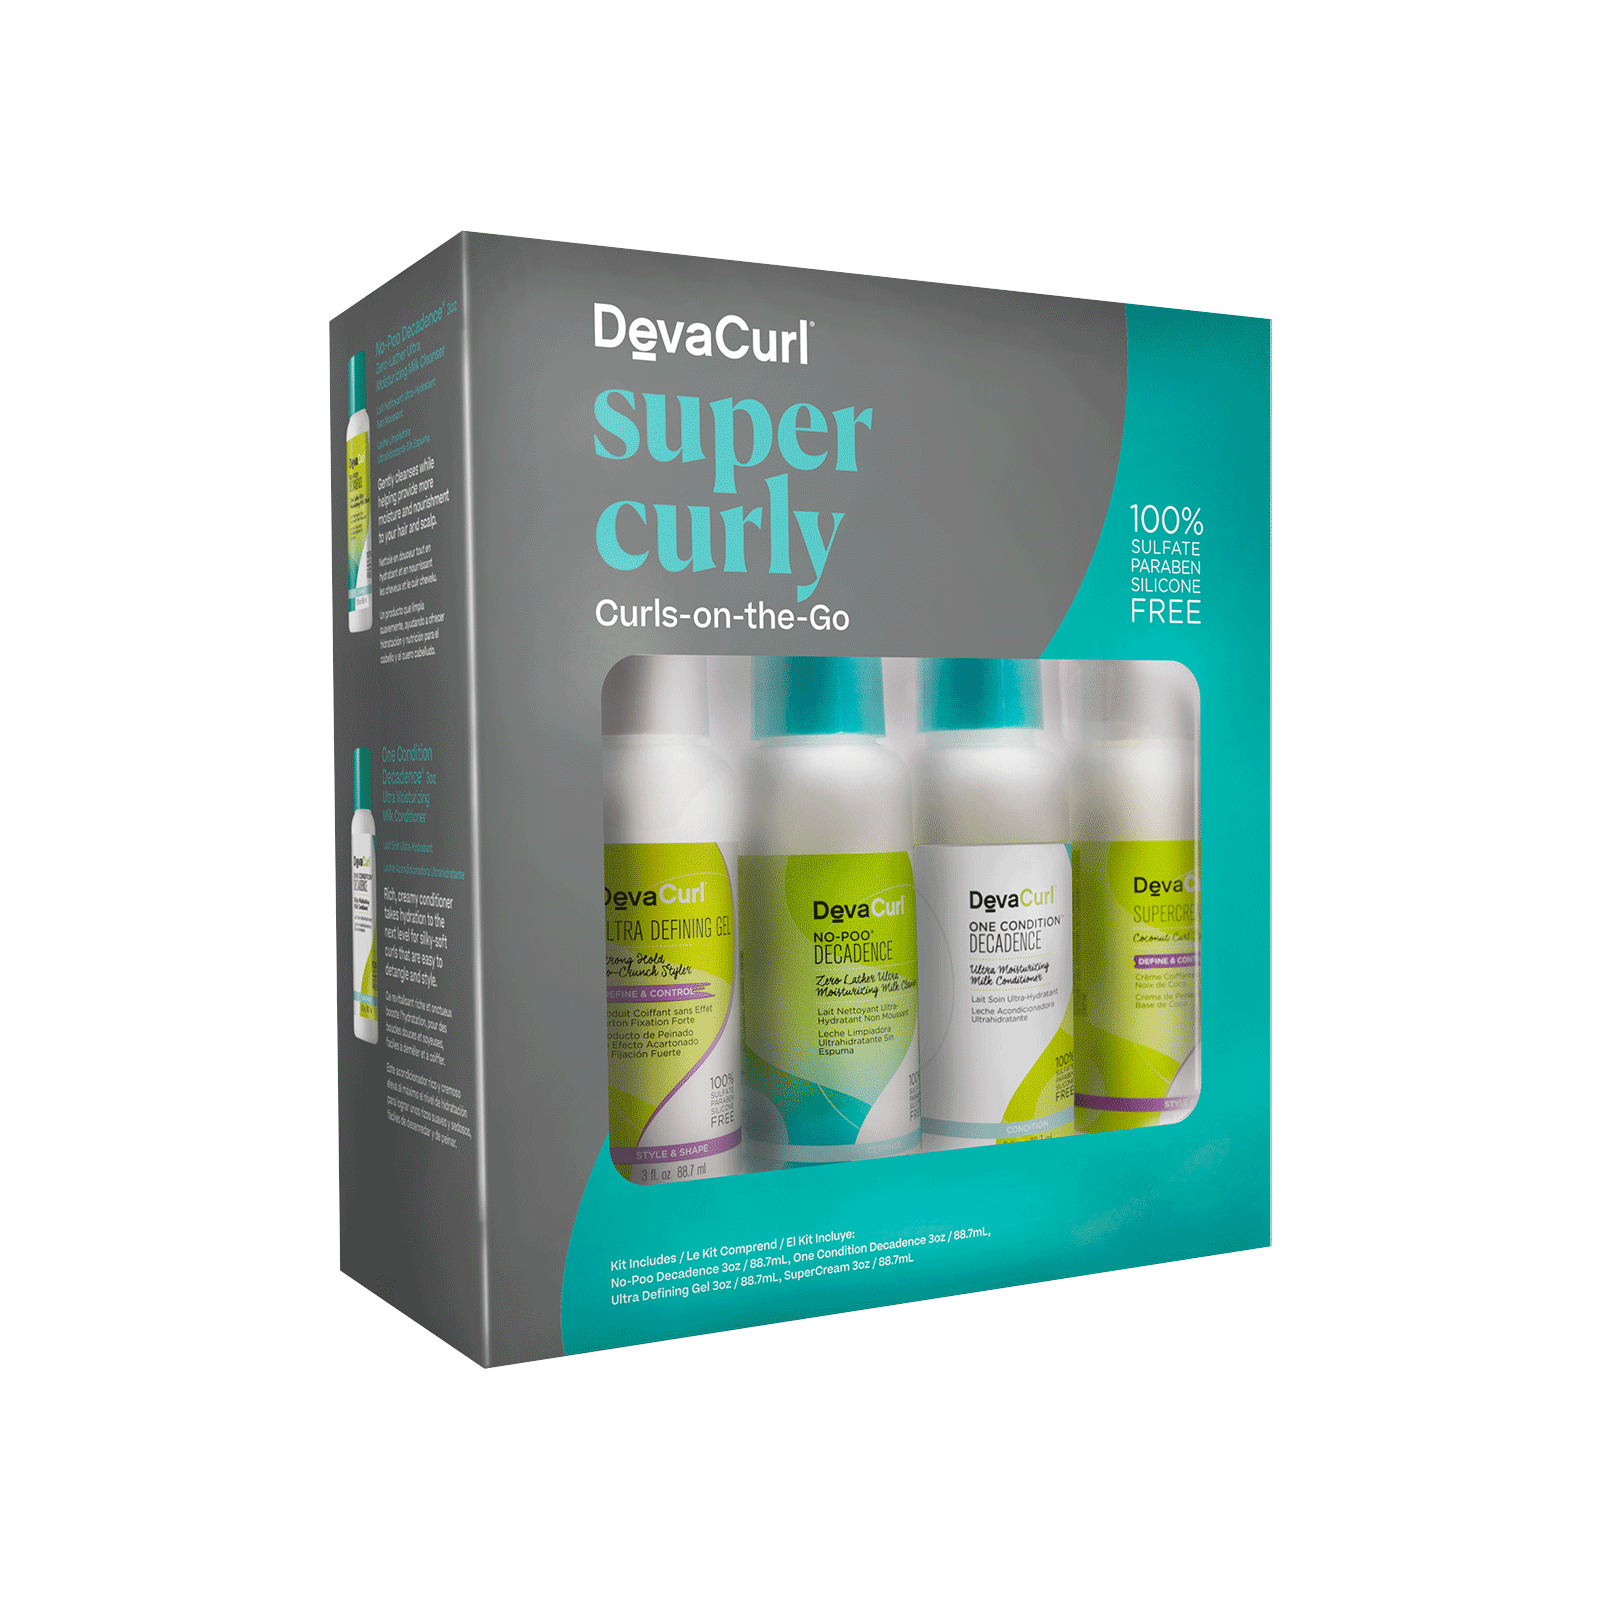 Super Curly Curls-On-The-Go Kit